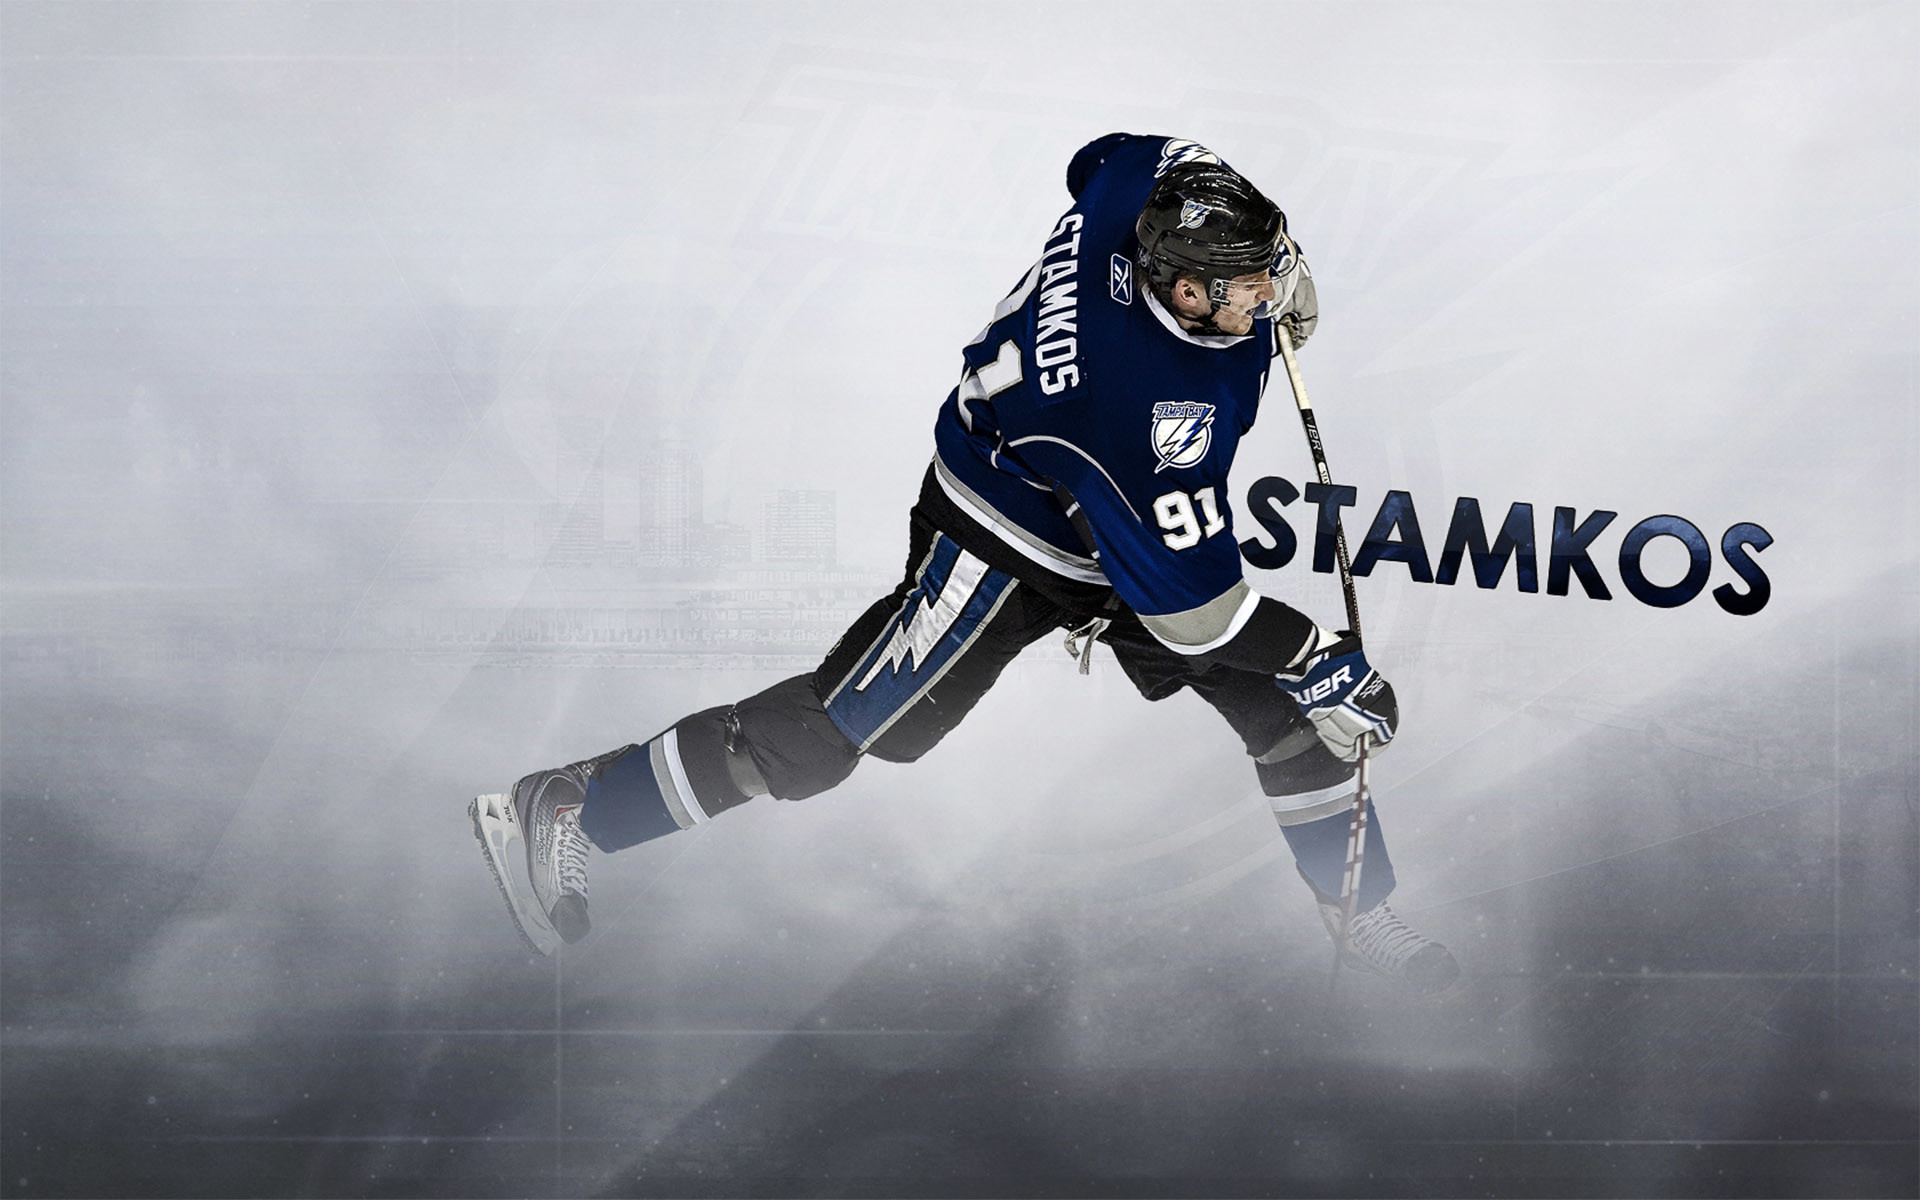 1920x1200 #StevenStamkos #NHL #Hockey #background #wallpaper http://www. Steven  StamkosTampa Bay LightningHockeyBaysPrince ...